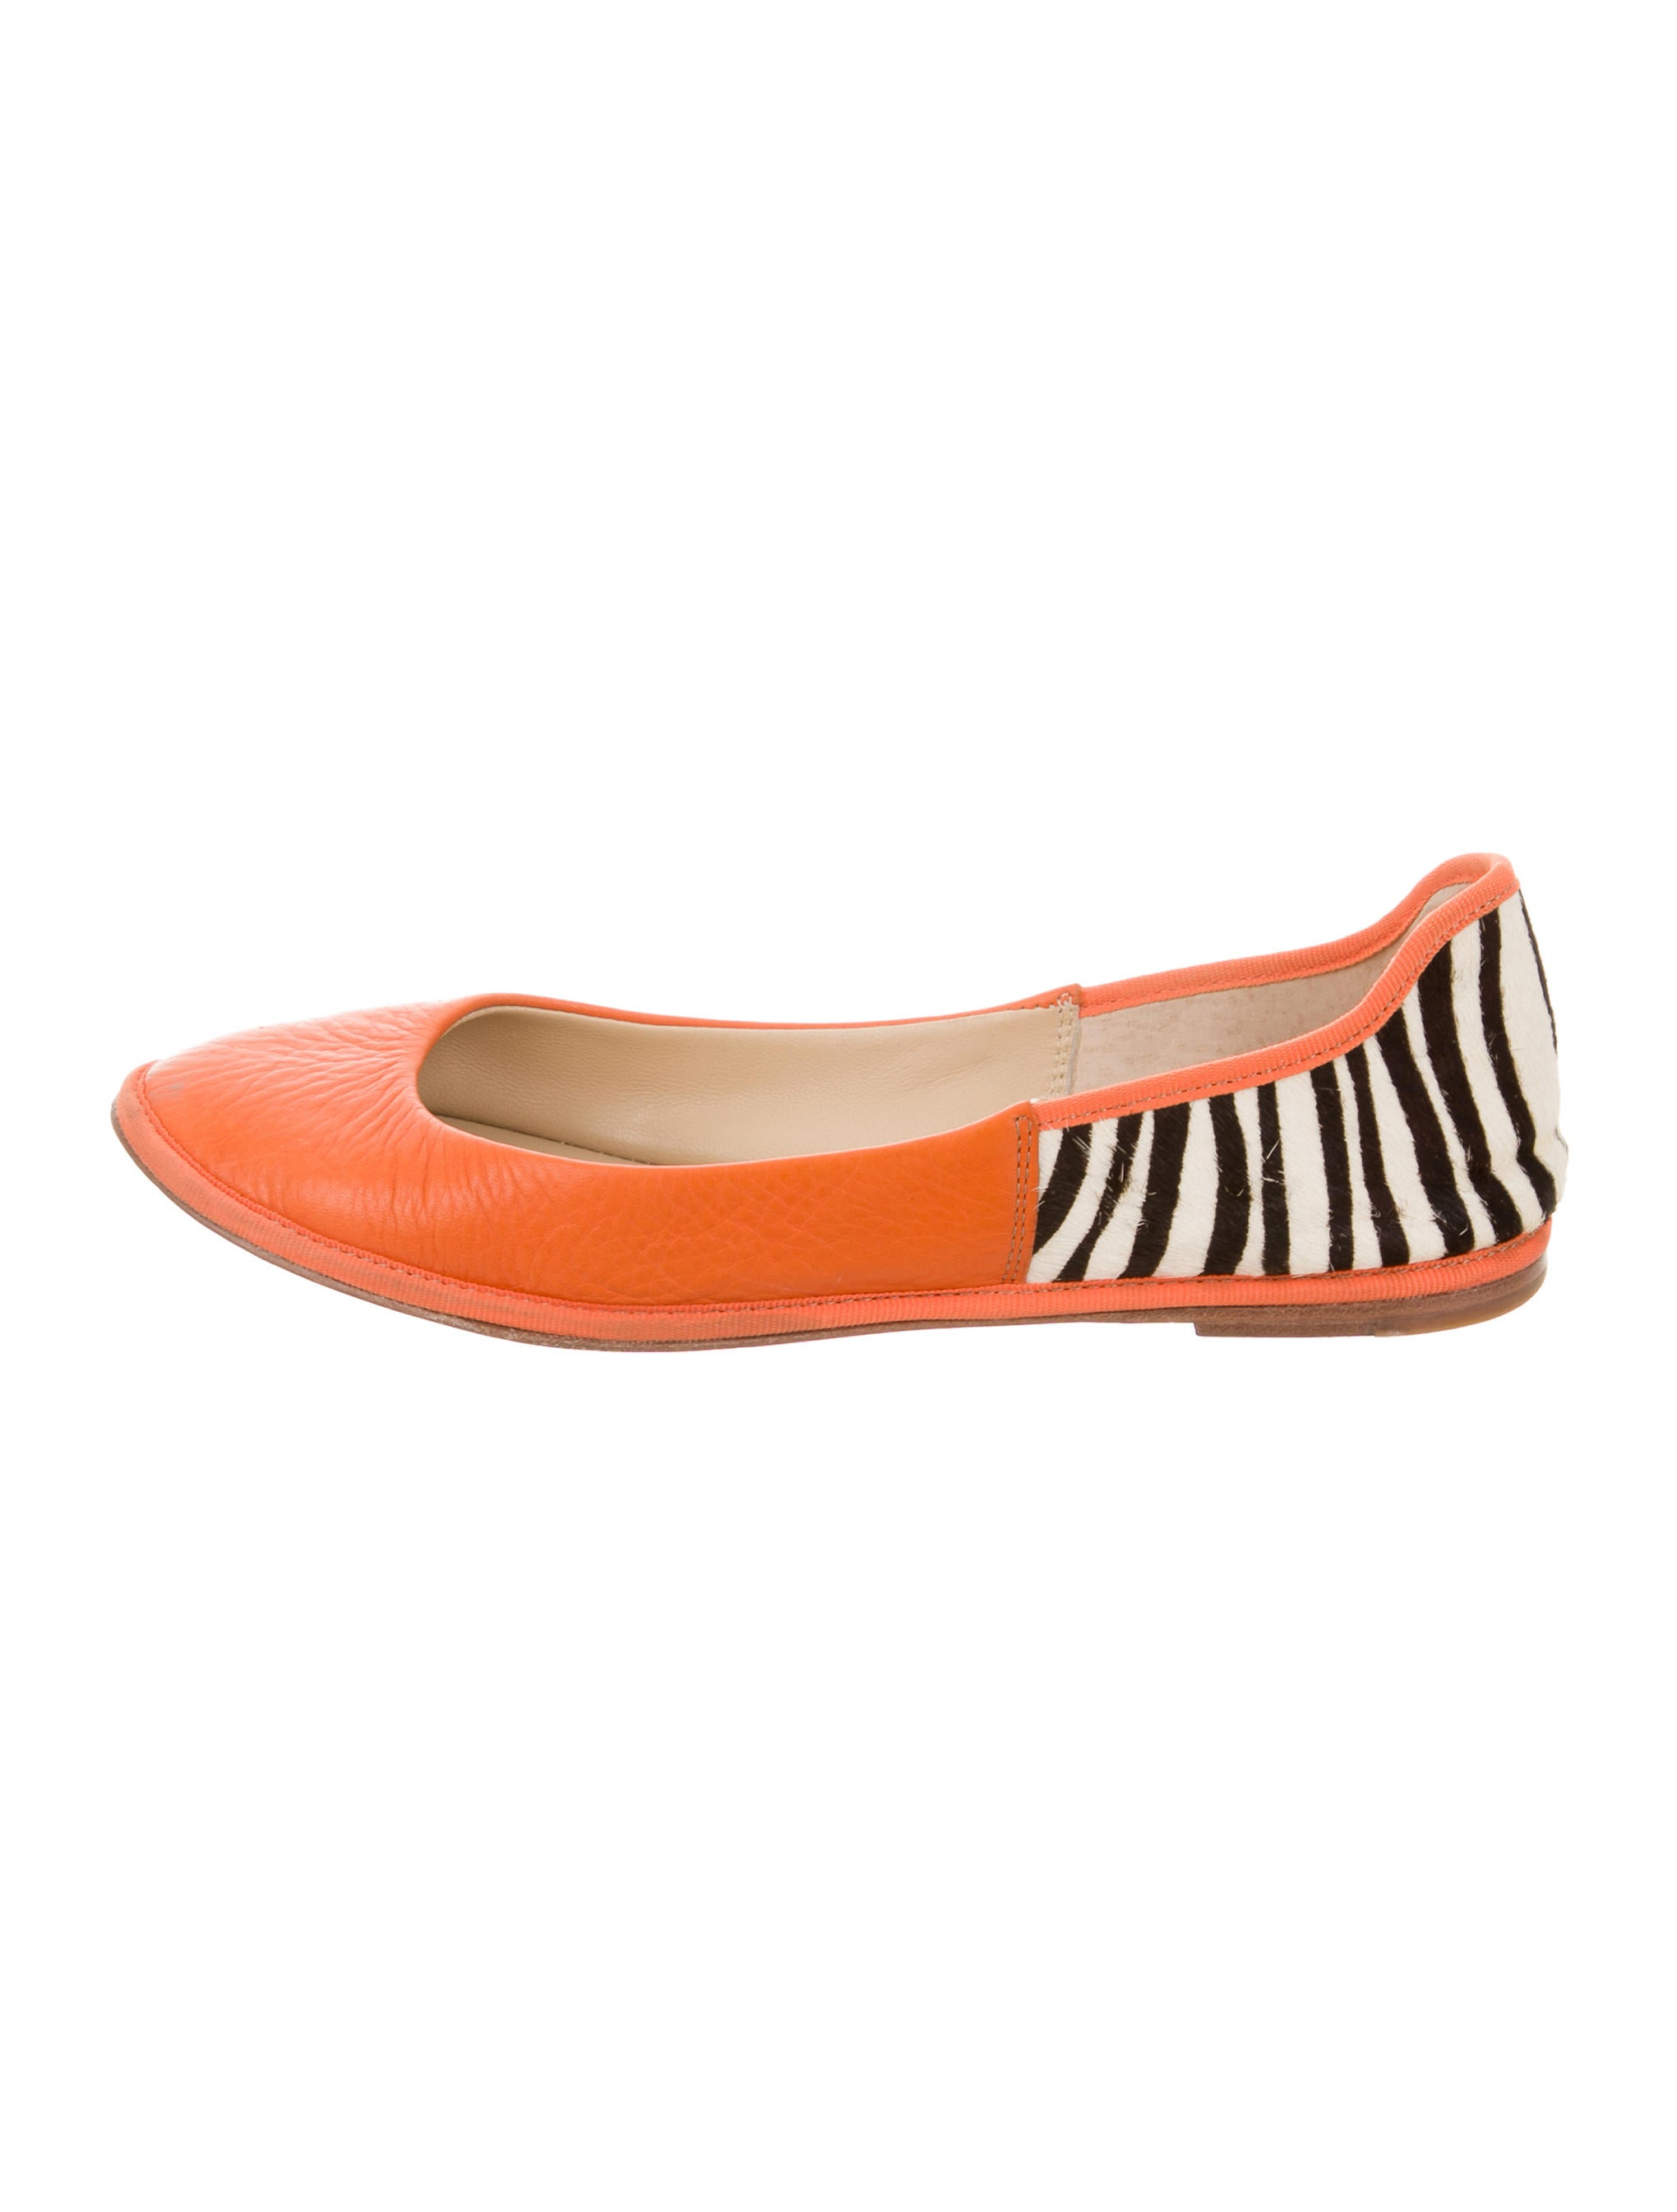 Diane von Furstenberg Ponyhair Round-Toe Flats outlet great deals shopping online original clearance low shipping cheap best place 7N8TvXF